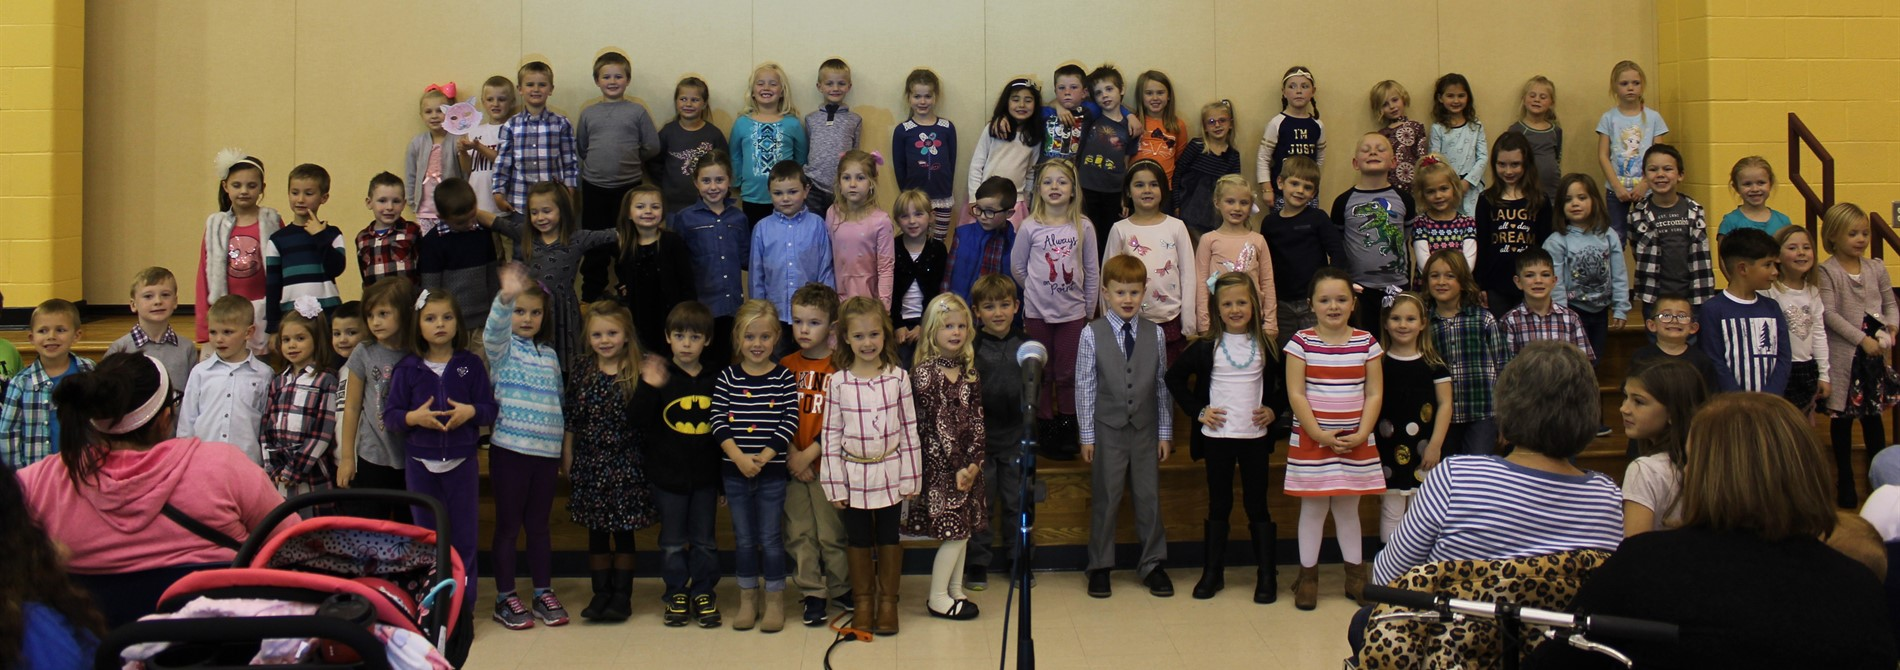 Nashport Kindergarten Celebrates Art & Music